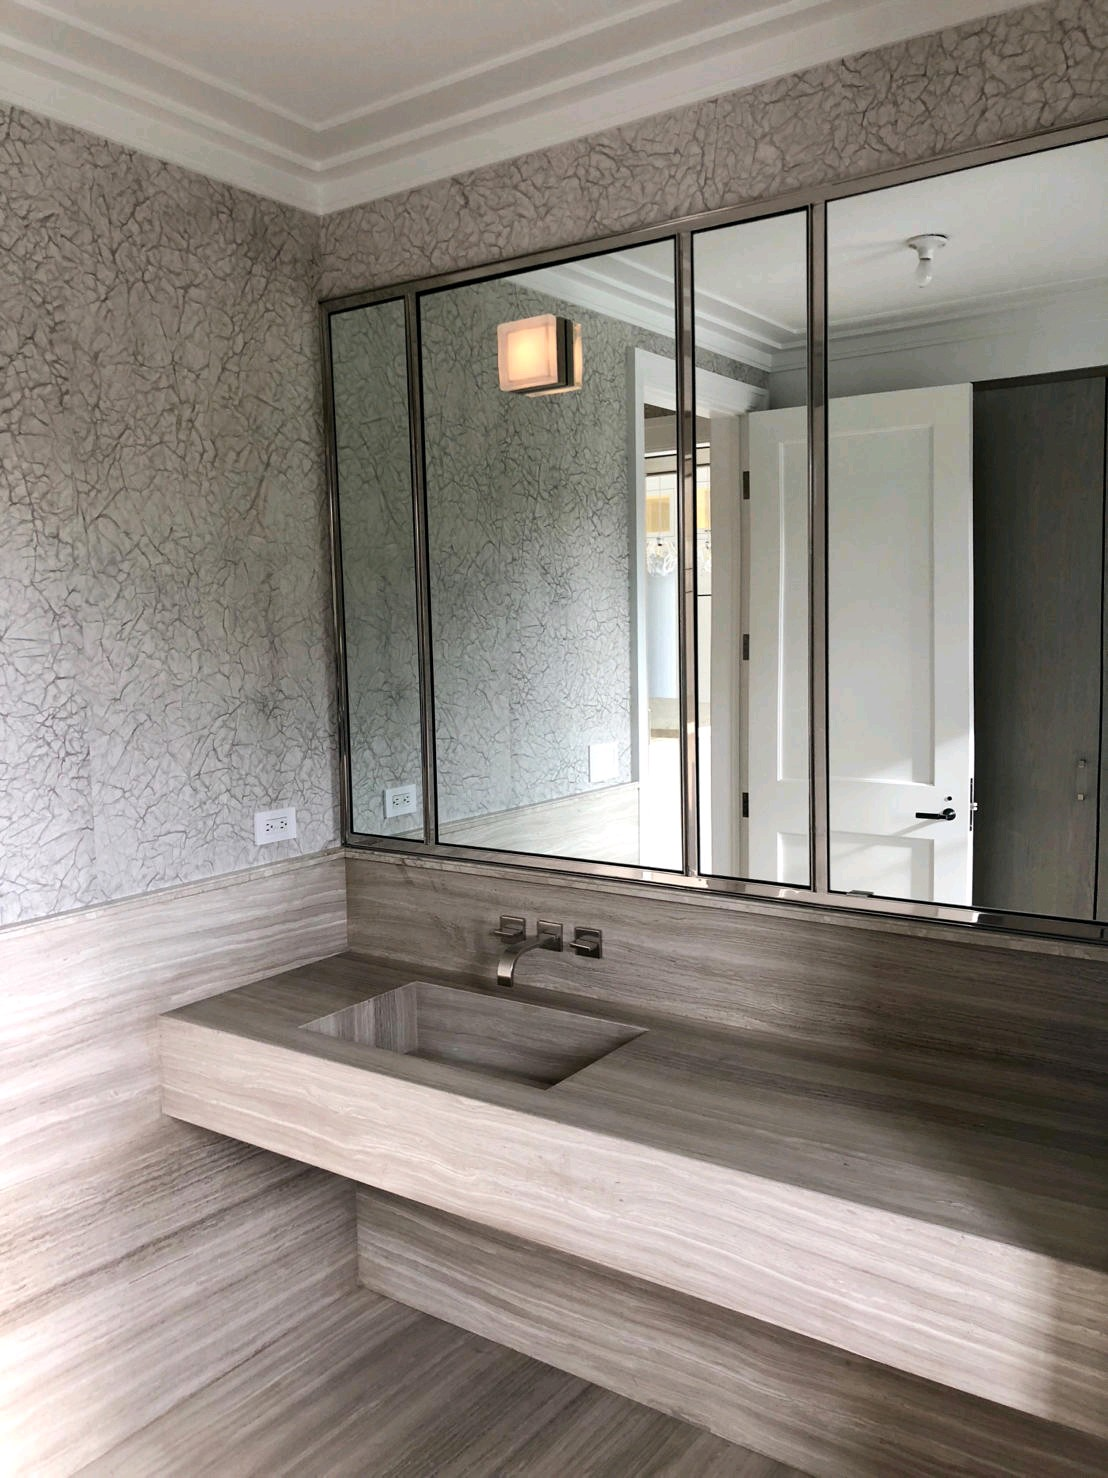 Wooden Grey Marble Bathroom Vanities and Flooring